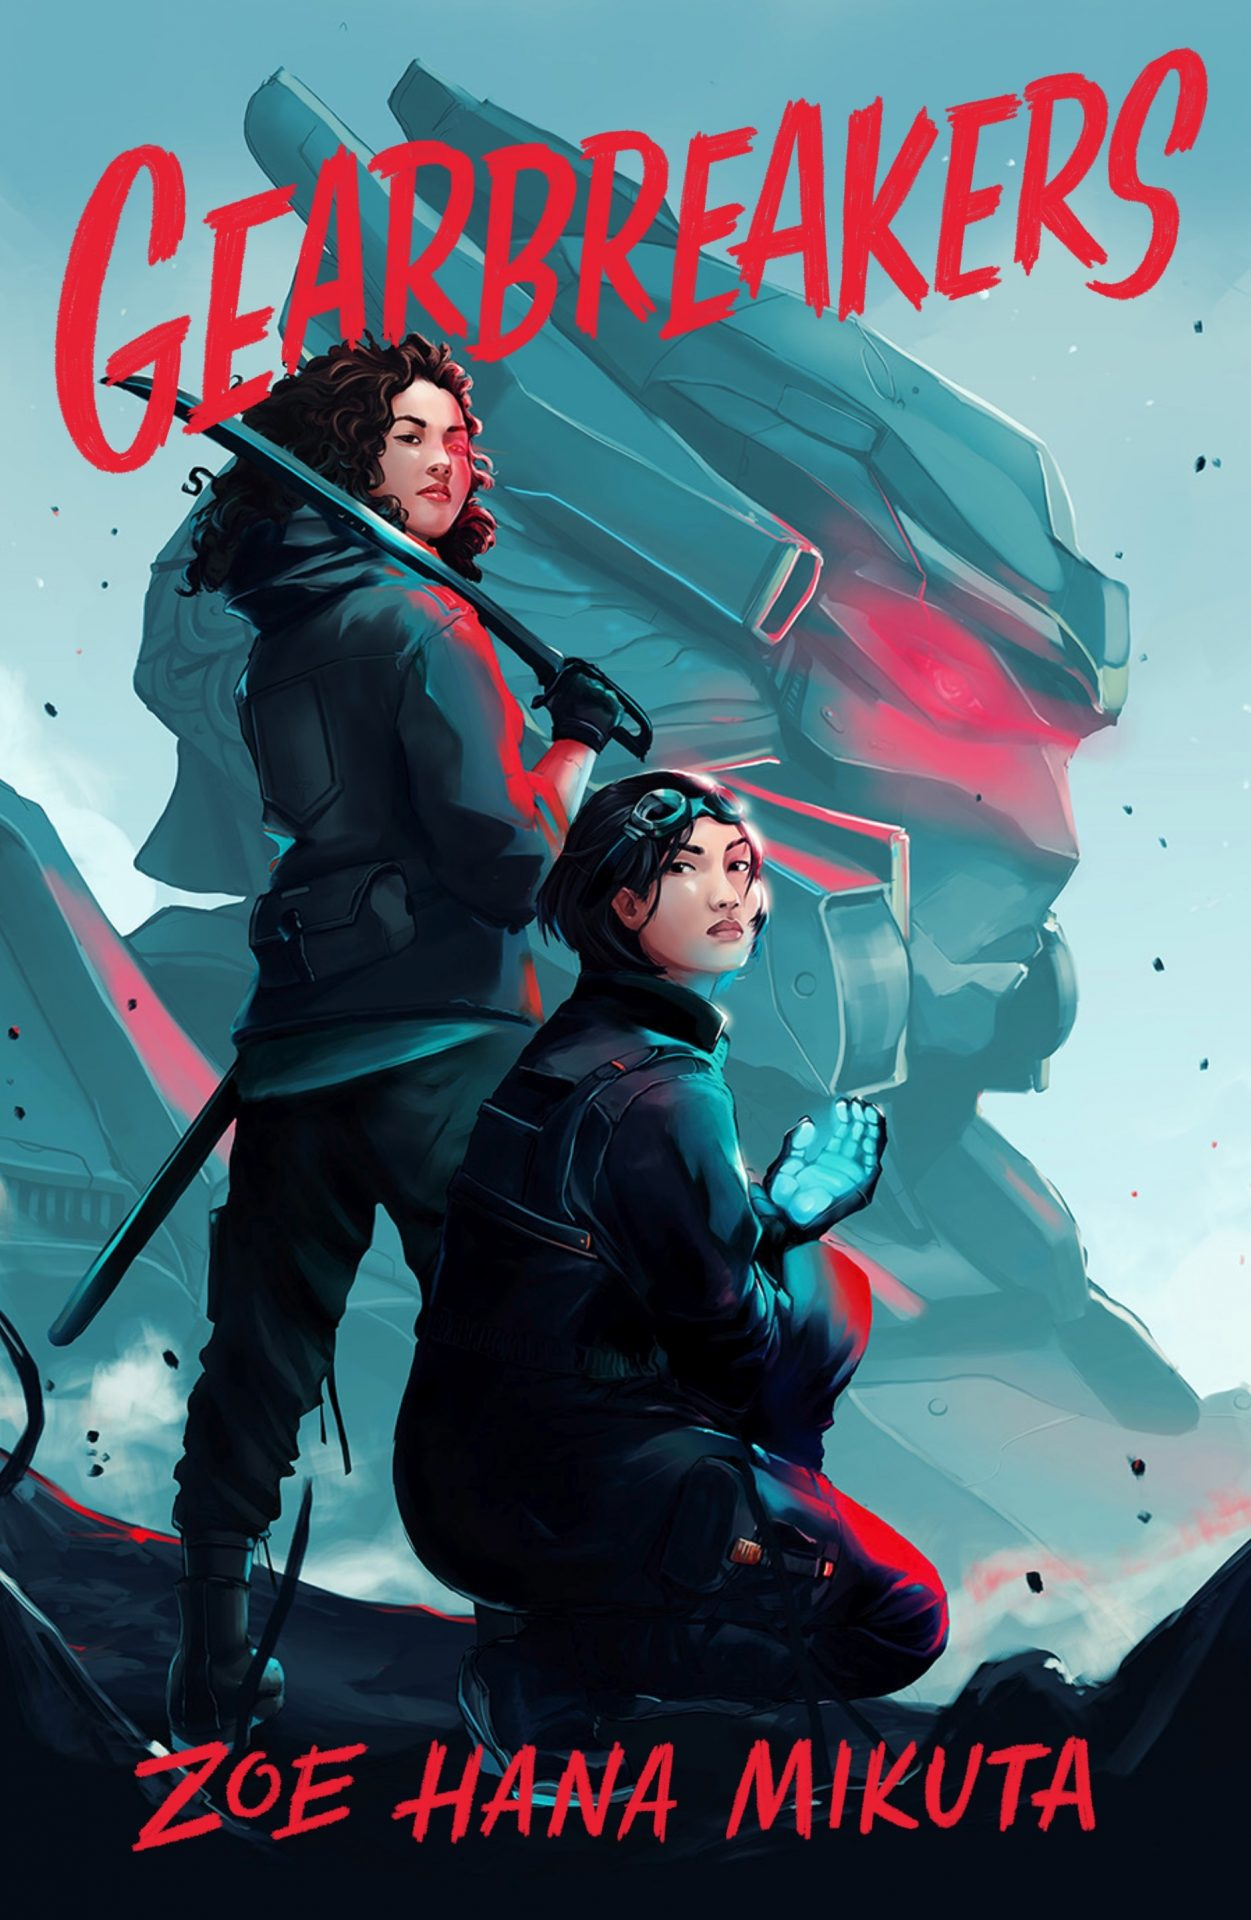 The cover for Gearbreakers shows two women in front of a giant mech, one stands holding a sword and the other kneels